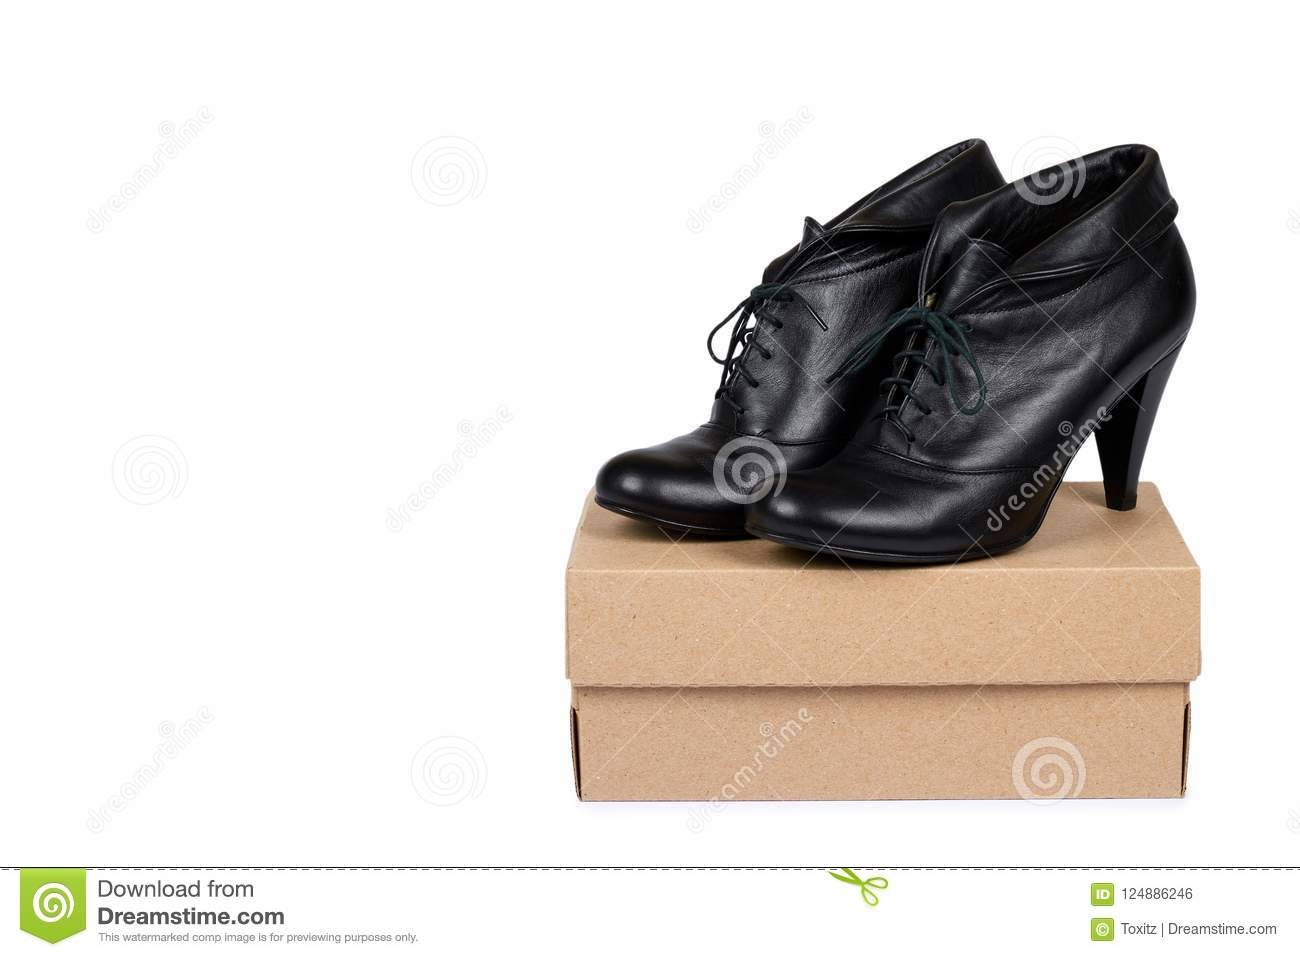 female black leather high heel shoes with box isolated on white